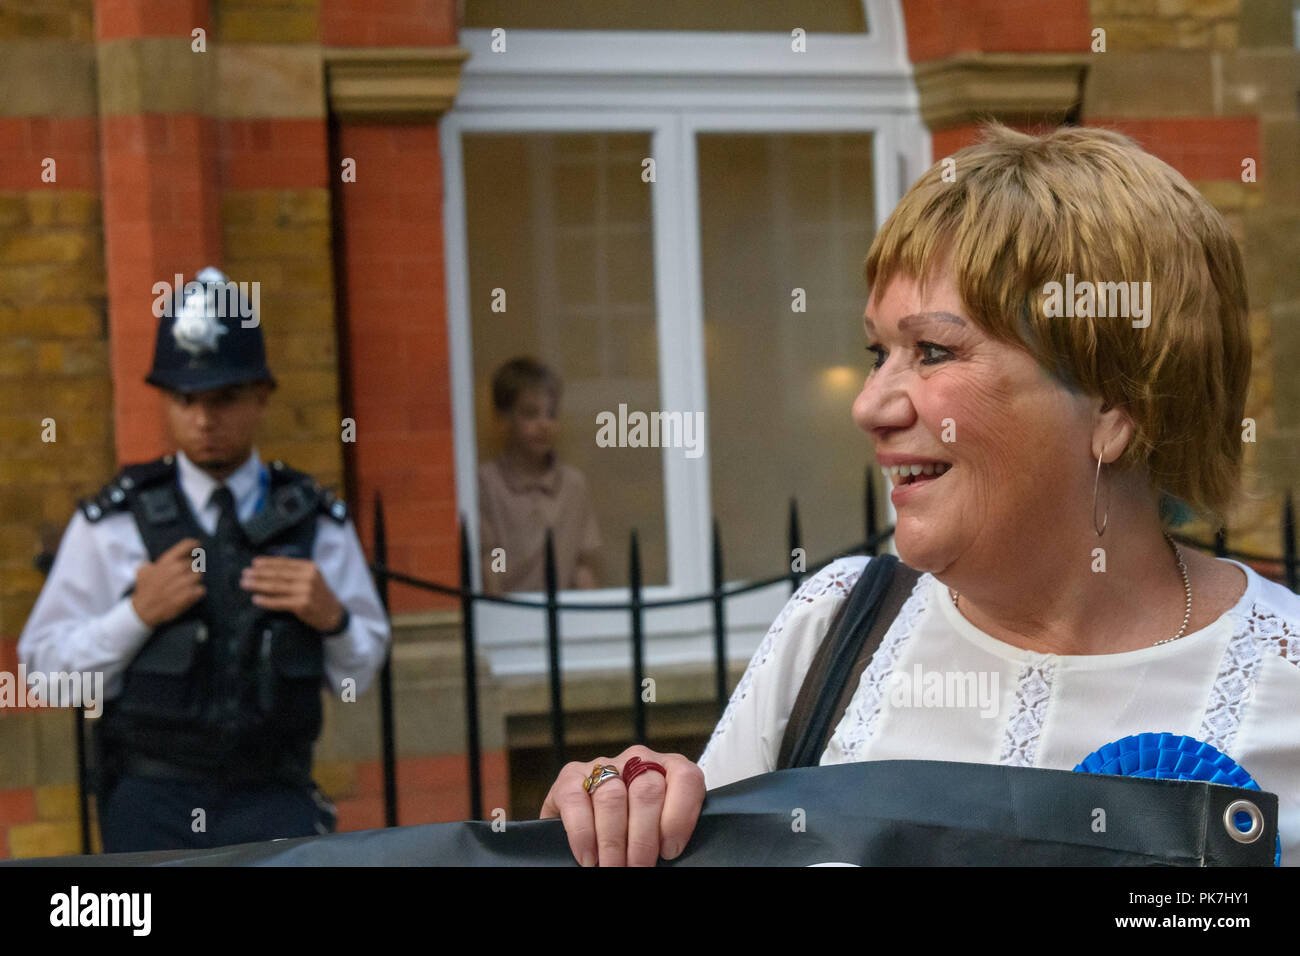 London, UK. 11th Sept 2018. One of the Rees-Mogg children watches from the window as Class War protest  at the £5.6m Westminster town house of Jacob Rees-Mogg. Jane Nicholl is dressed as Nanny Cook, Jacob Rees-Mogg's nanny who now looks after him and his six children. They say she ceased to exist as an independent human 50 years ago and has been subsumed into the Mogg family as if she was being confined in the tower of a gothic mansion. The protest starred former Class War Westminster candidate Adam Clifford as Jacob Rees-Mogg and Jane Nicholl as Nanny Crook, as well as a giant penis and offerStock Photo